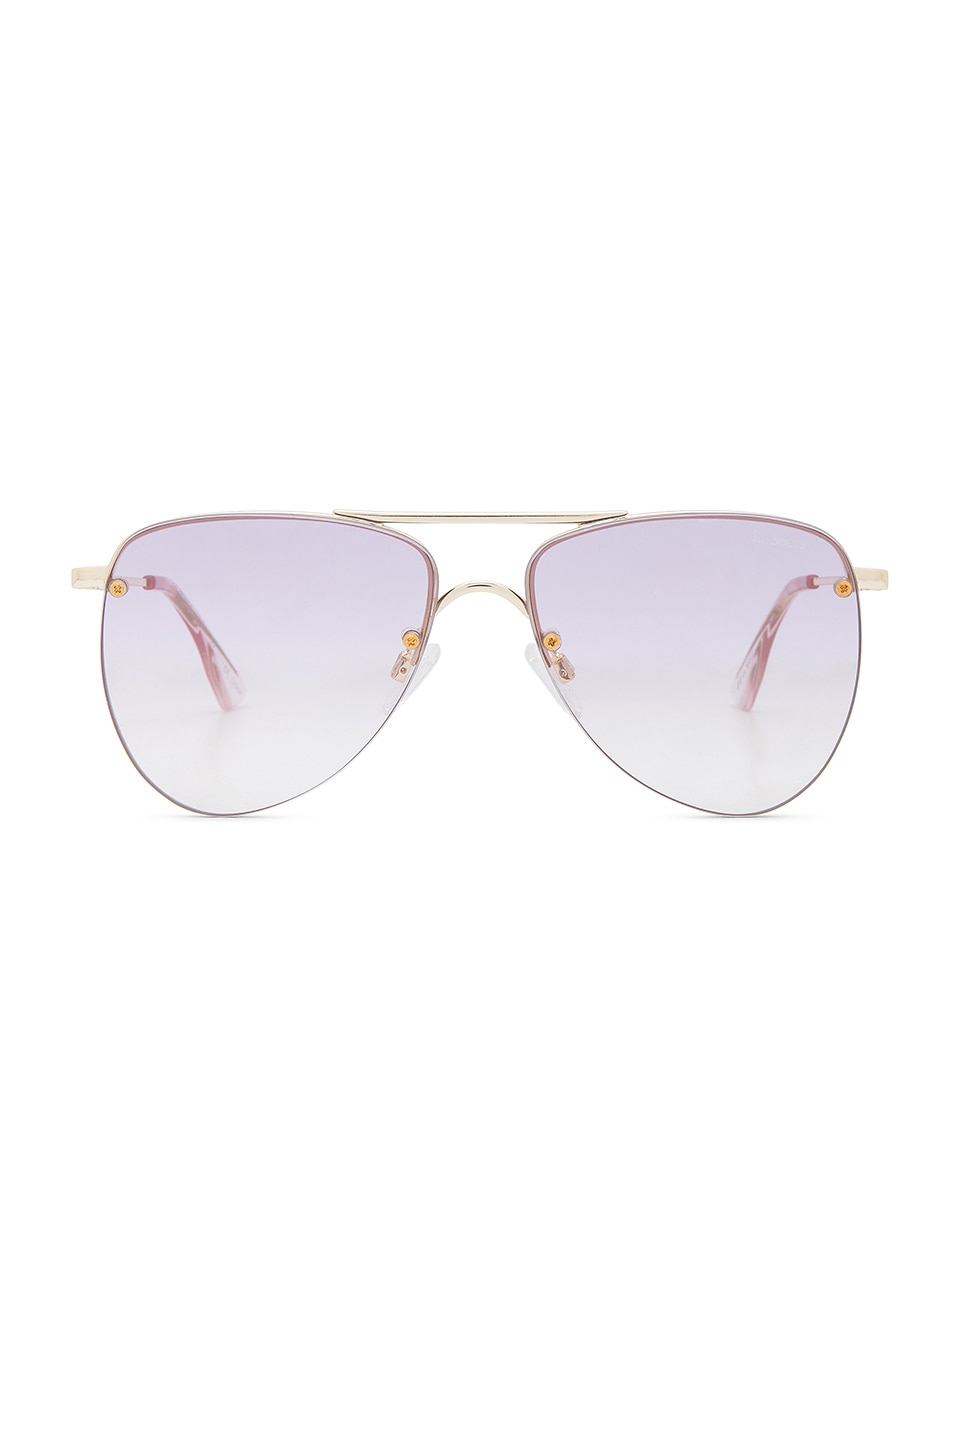 Le Specs The Prince in Gold & Lilac Gradient